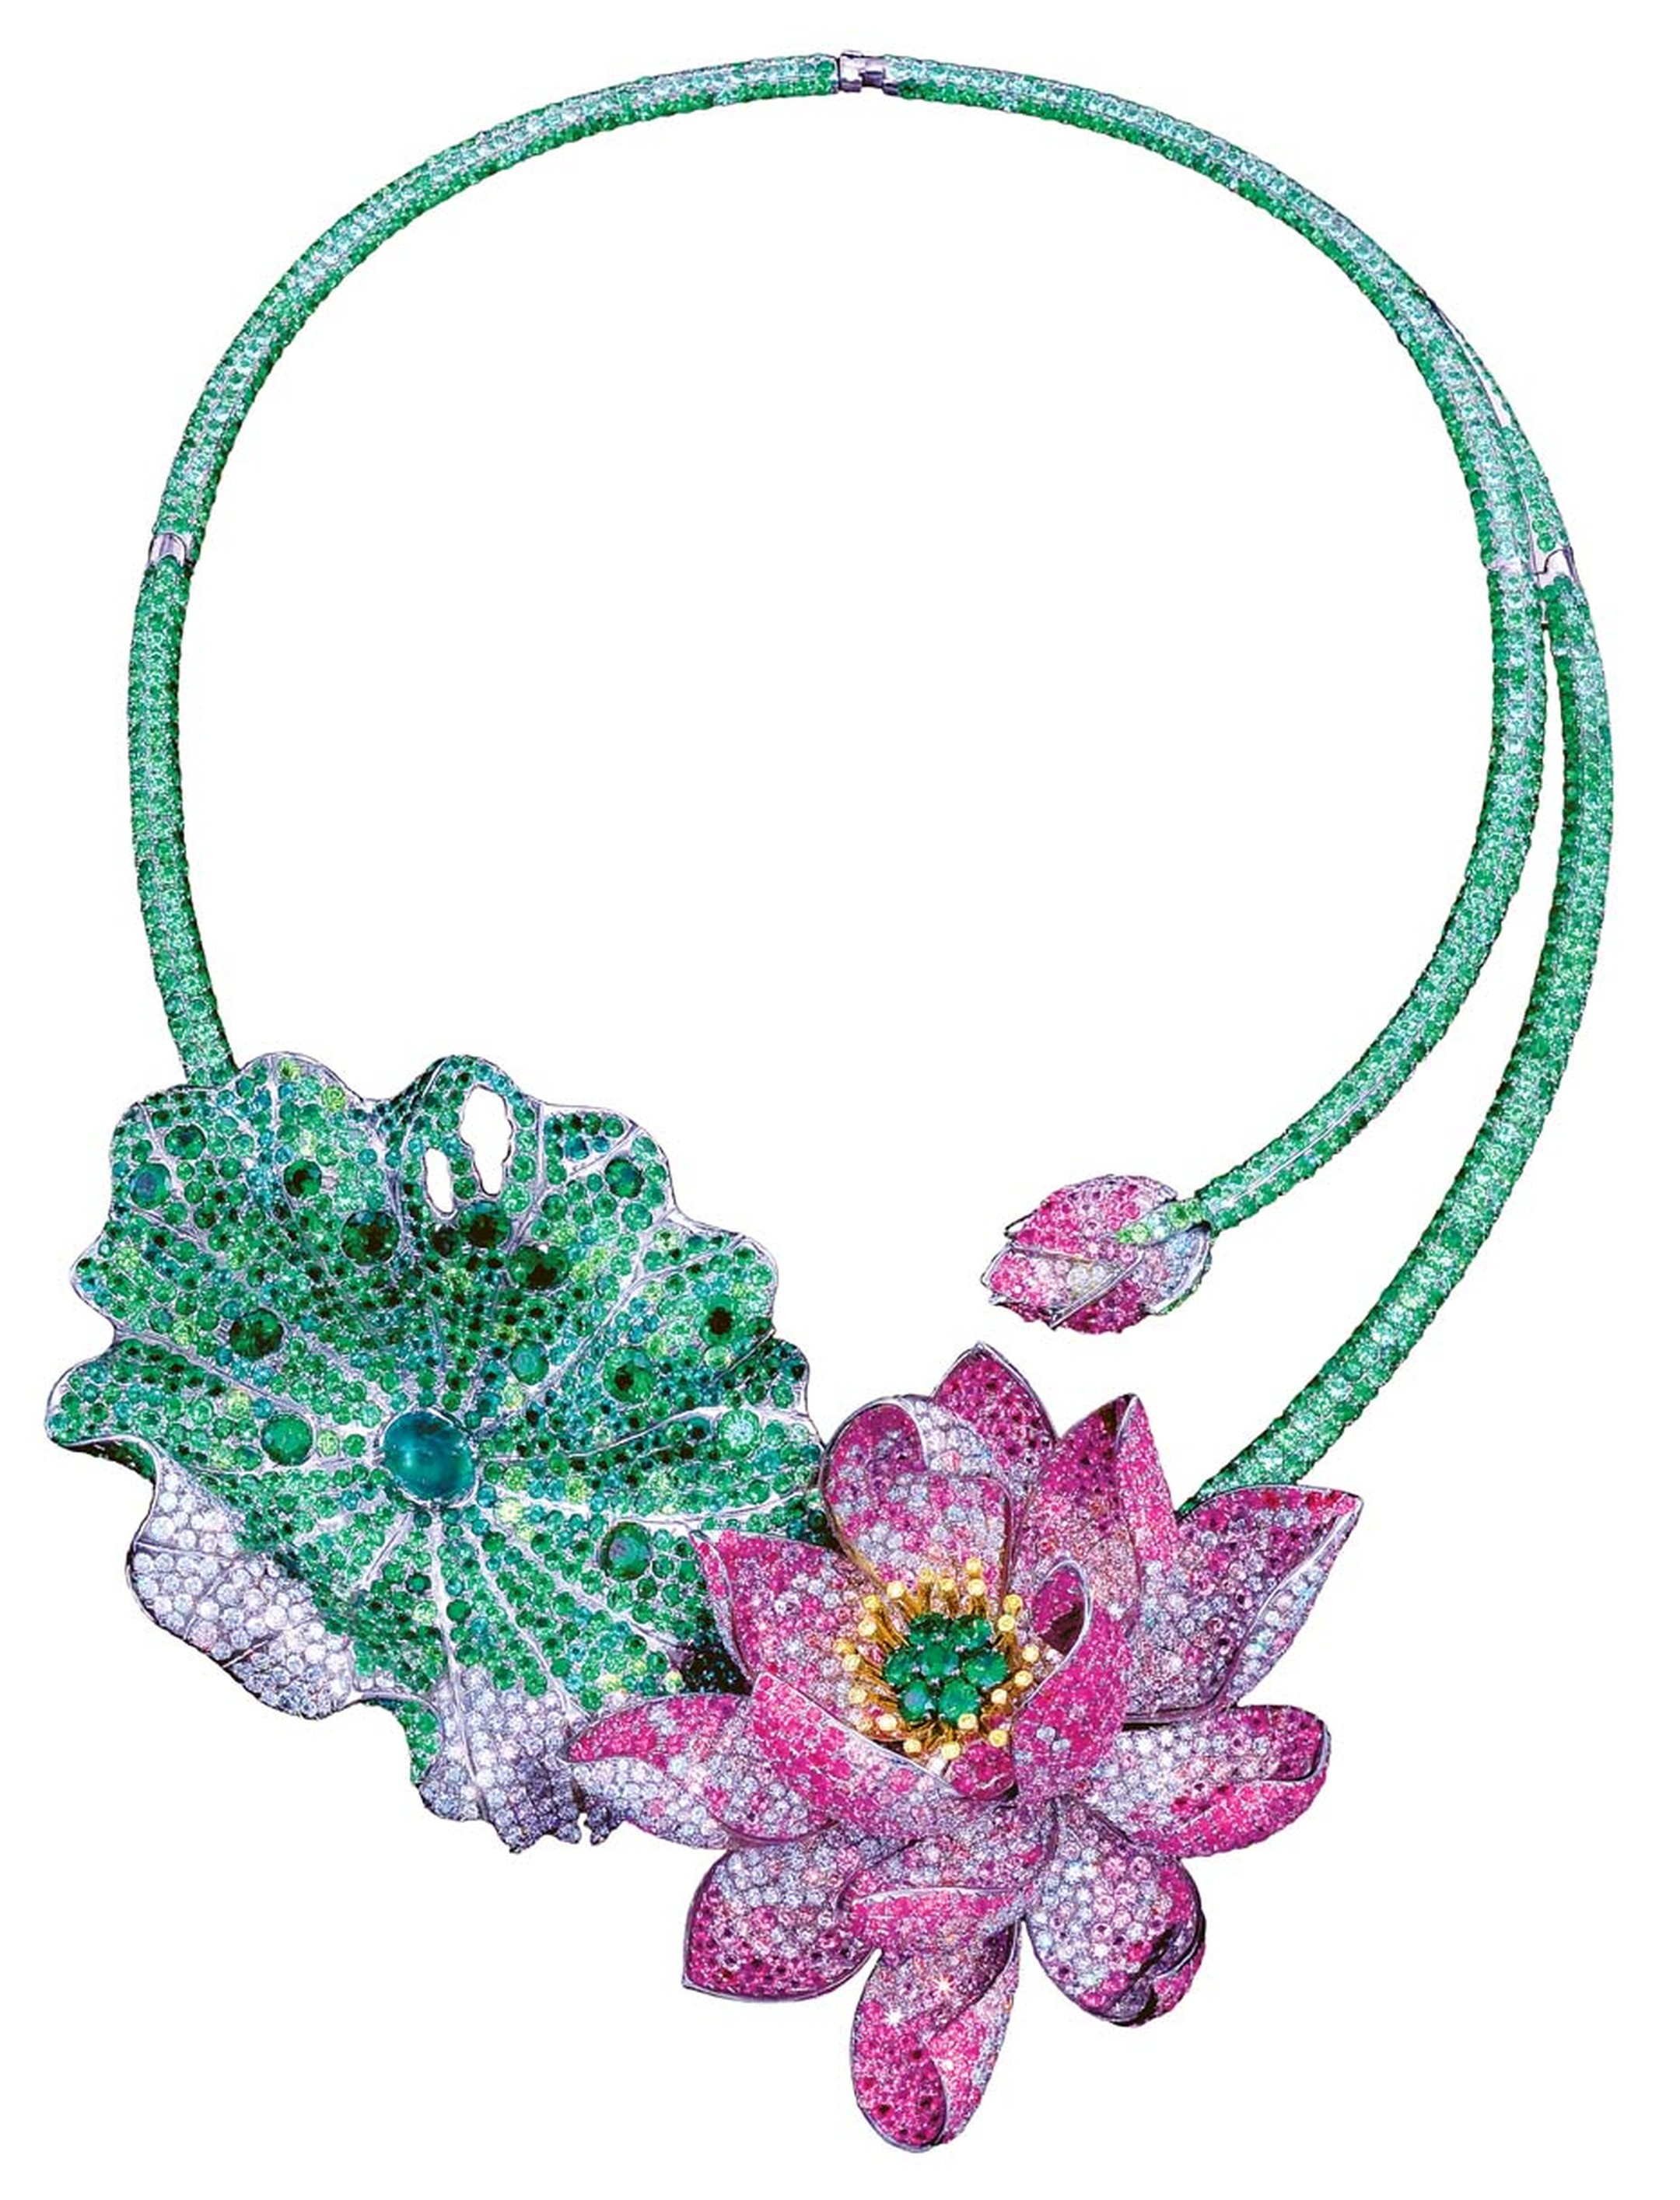 Anna Hu's Art Nouveau-style Celestial Lotus necklace features natural Fancy Intense vivid yellow, grey and white diamonds, natural Burmese rubies, Colombian emeralds, demantoid garnets, tsavorites, and multi-coloured pink sapphires, set in titanium.